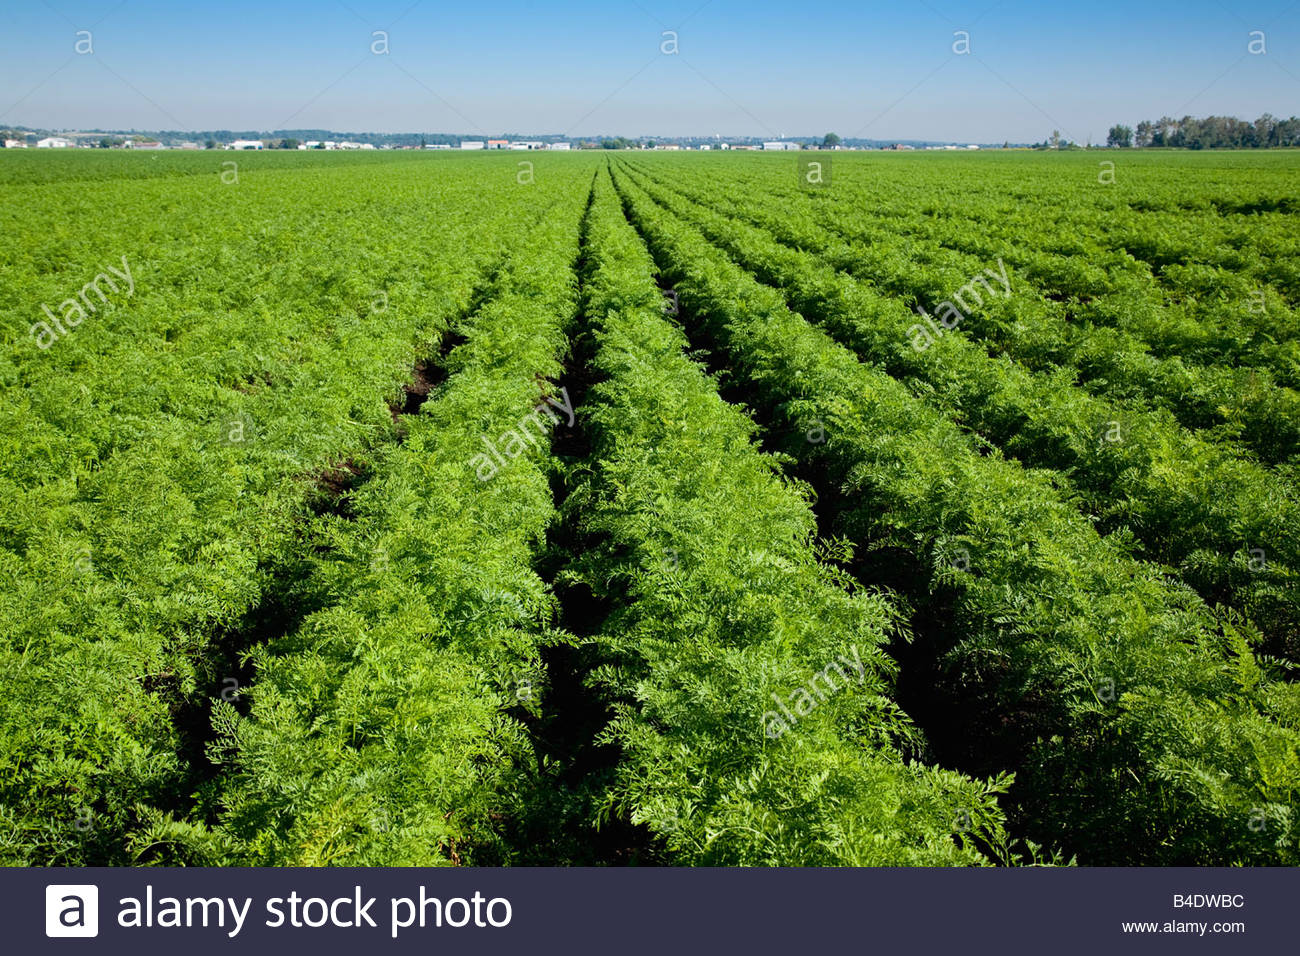 Carrots in the market gardens of Holland Marsh near Bradford Ontario Canada - Stock Image